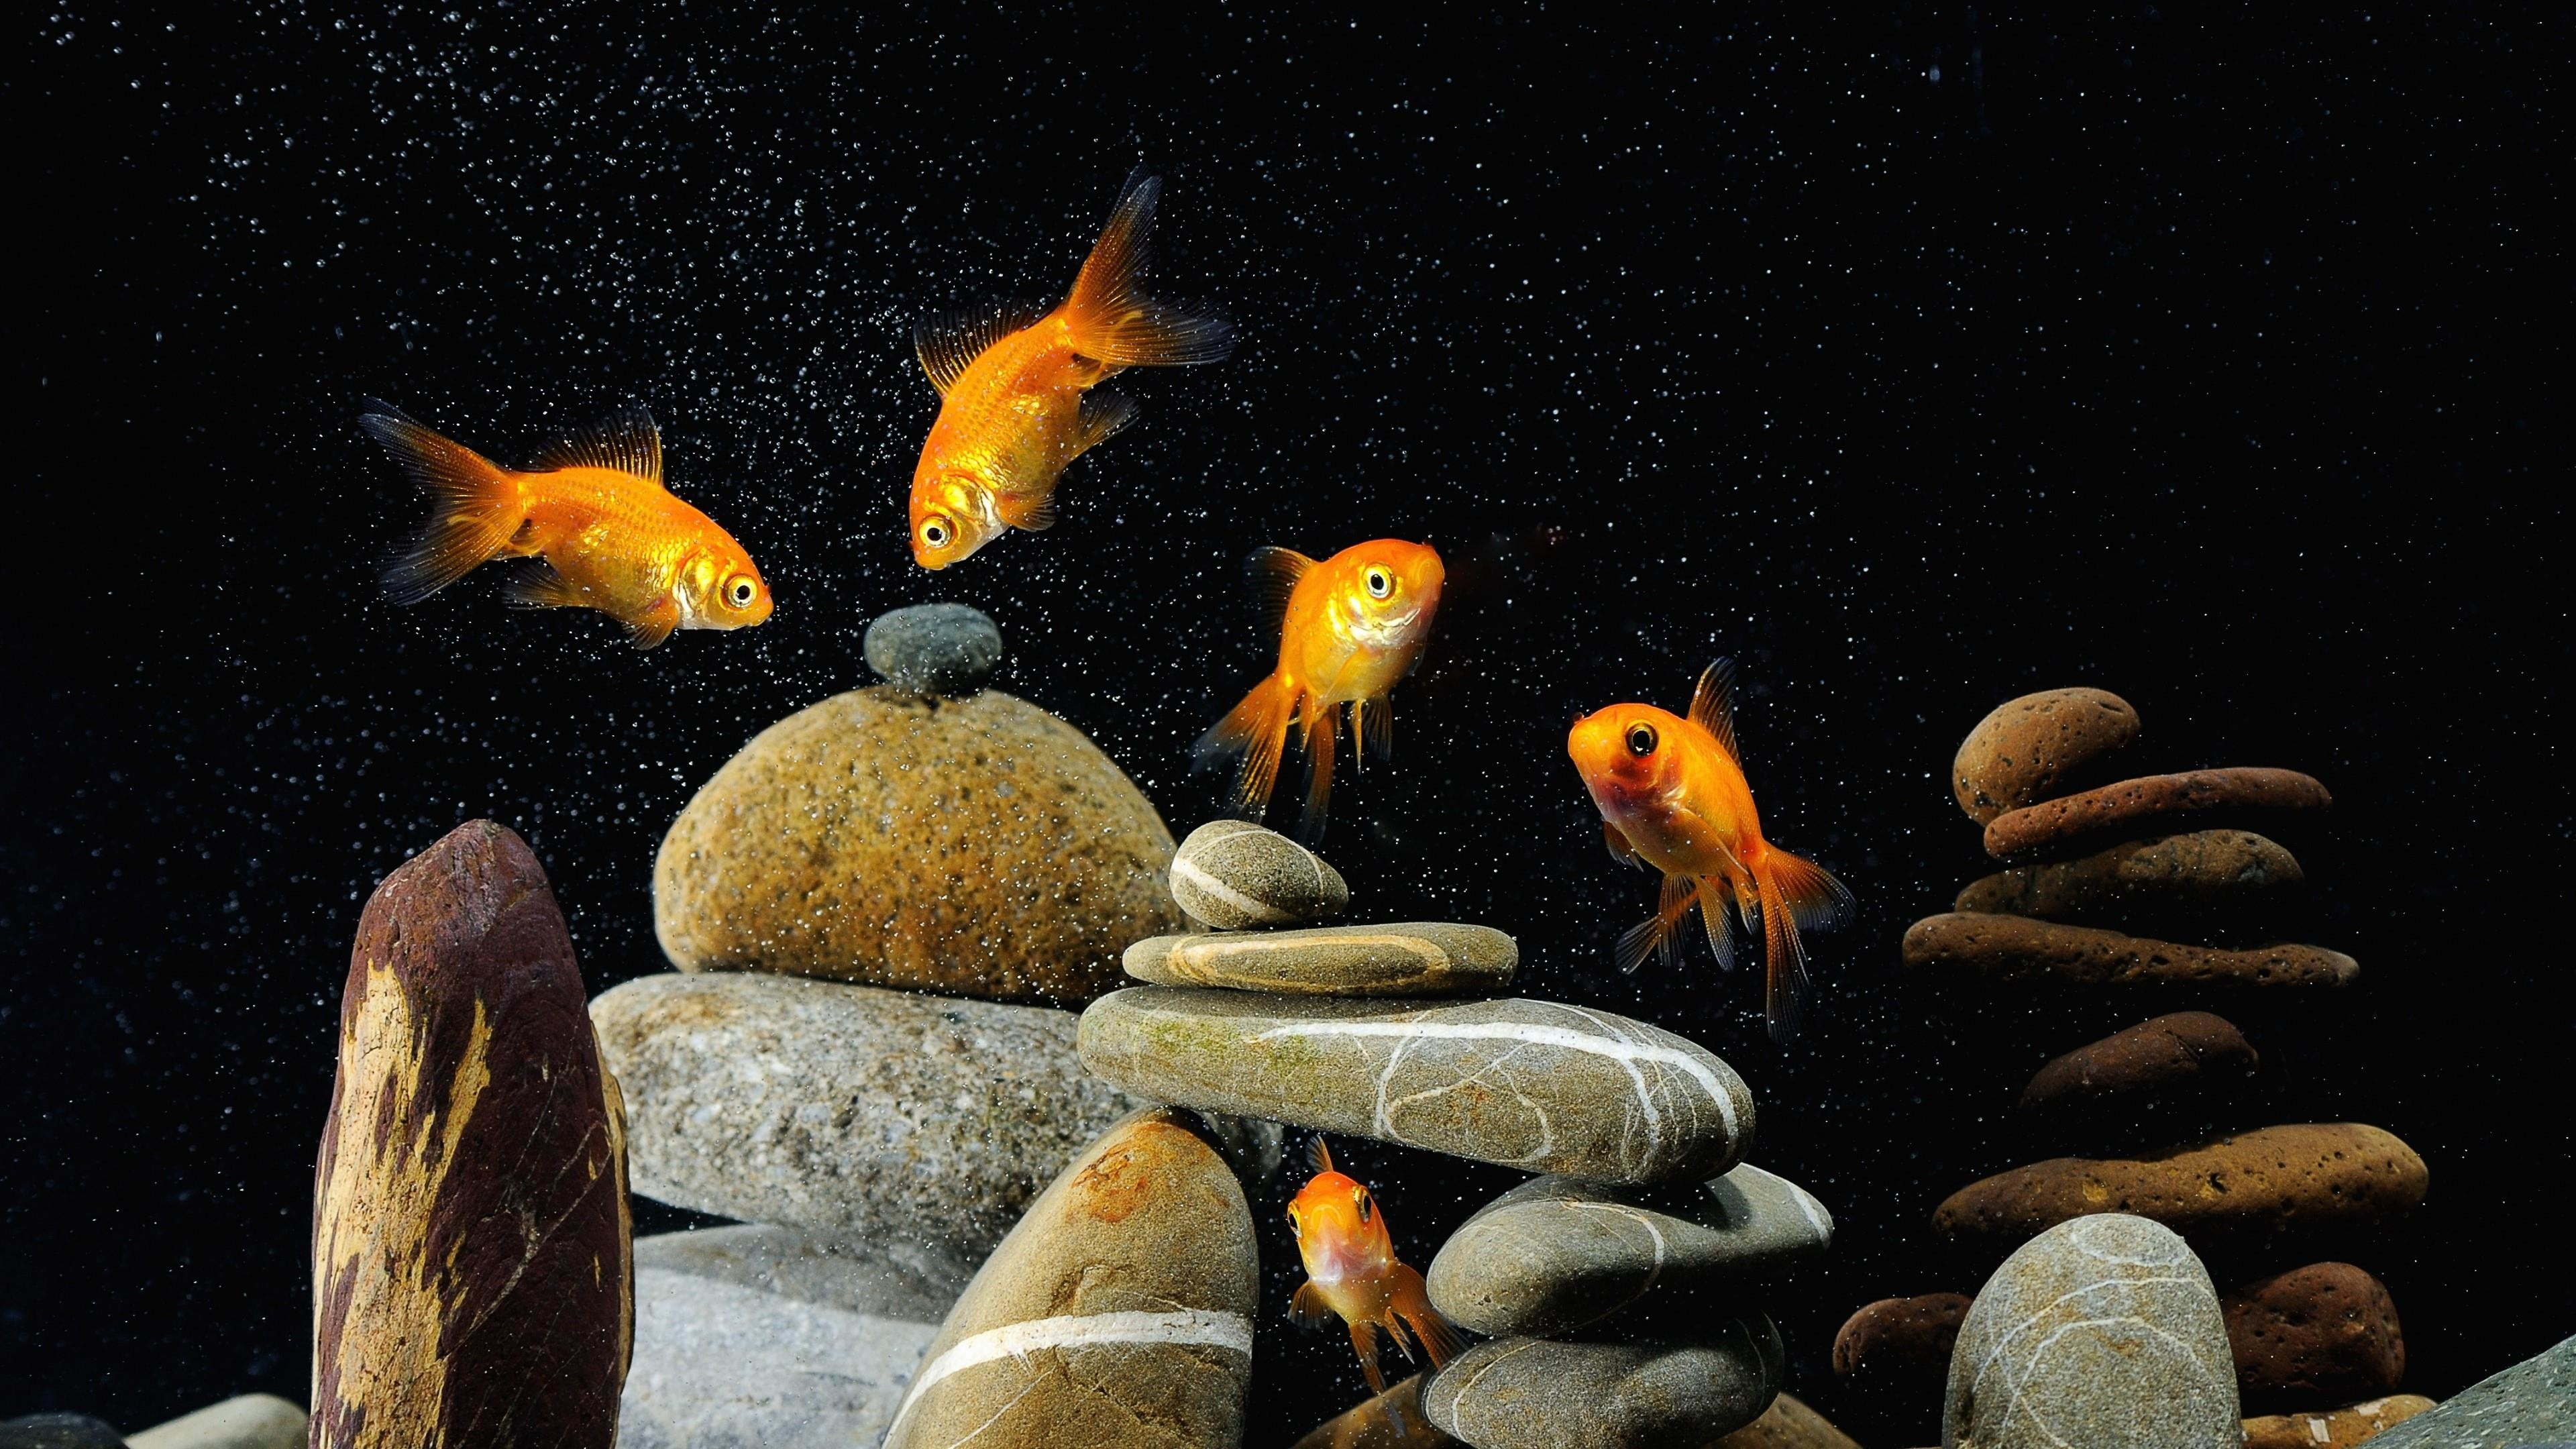 Res: 3840x2160, Goldfish Wallpaper | Wallpaper Studio 10 | Tens of thousands HD and UltraHD  wallpapers for Android, Windows and Xbox